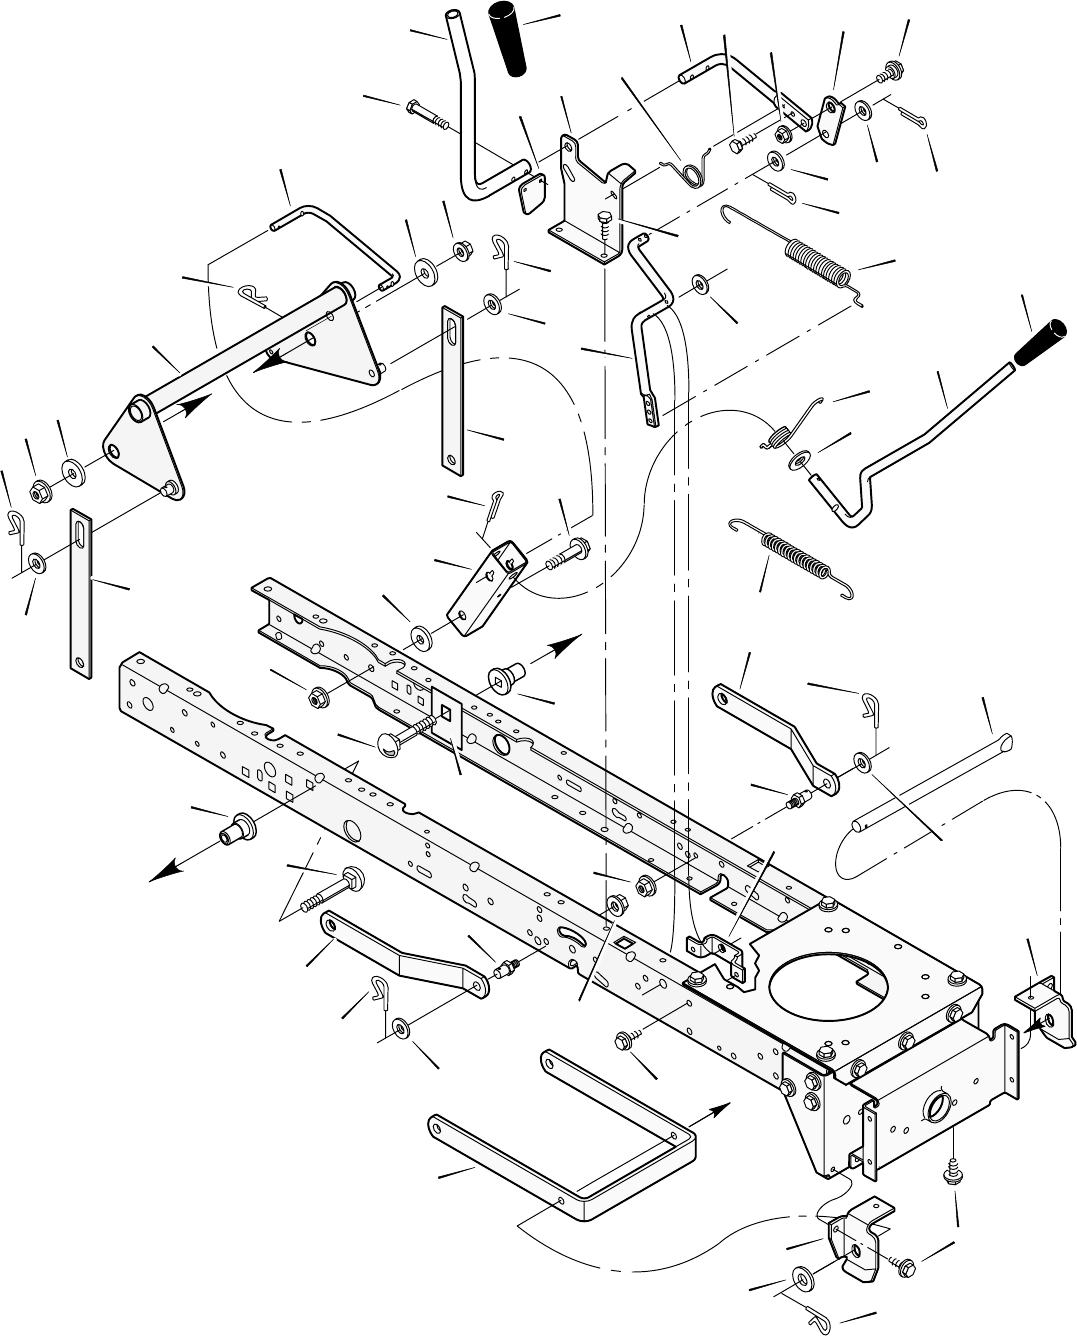 Page 24 of Murray Lawn Mower 405001x78B User Guide